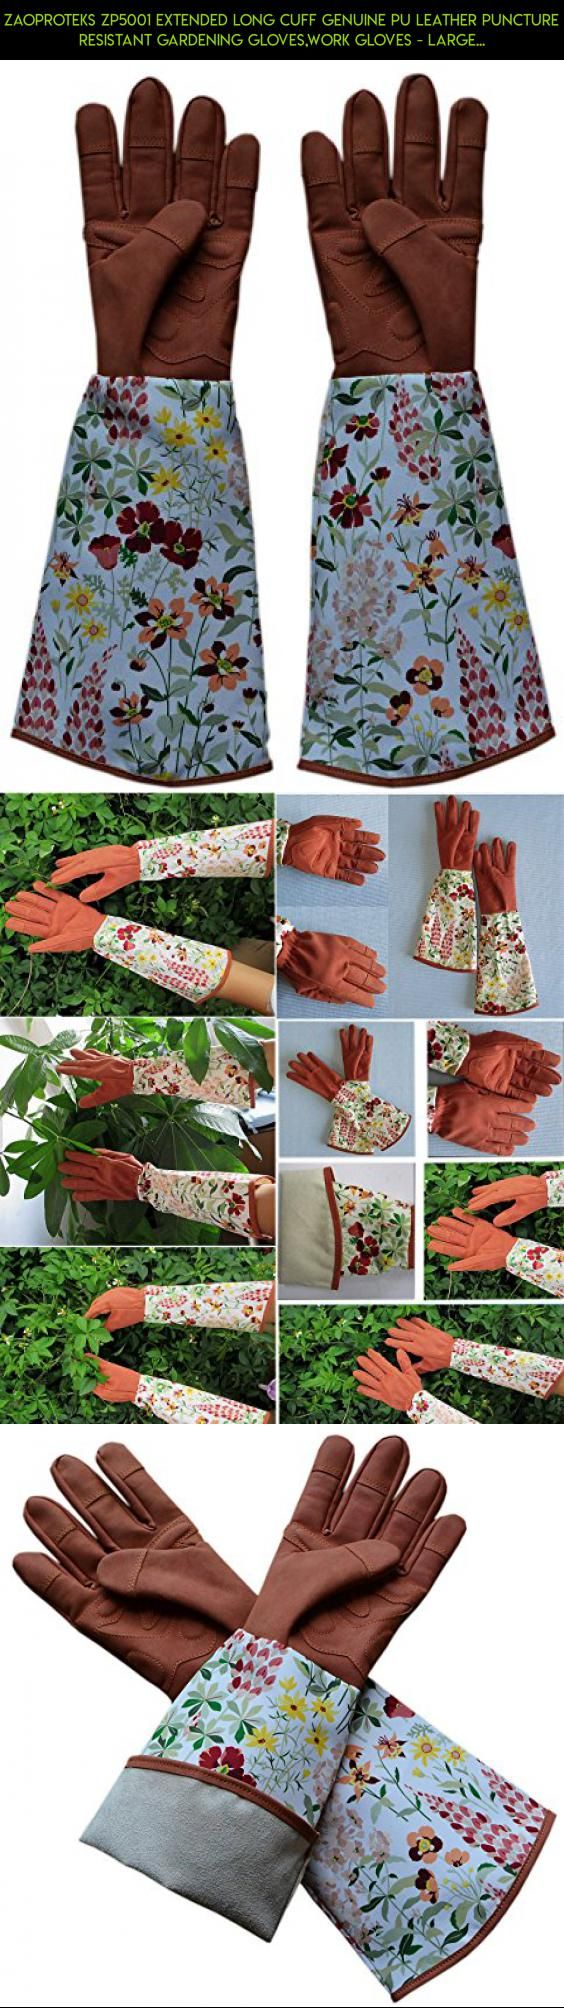 Leather work gloves made in the usa - Zaoproteks Zp5001 Extended Long Cuff Genuine Pu Leather Puncture Resistant Gardening Gloves Work Gloves